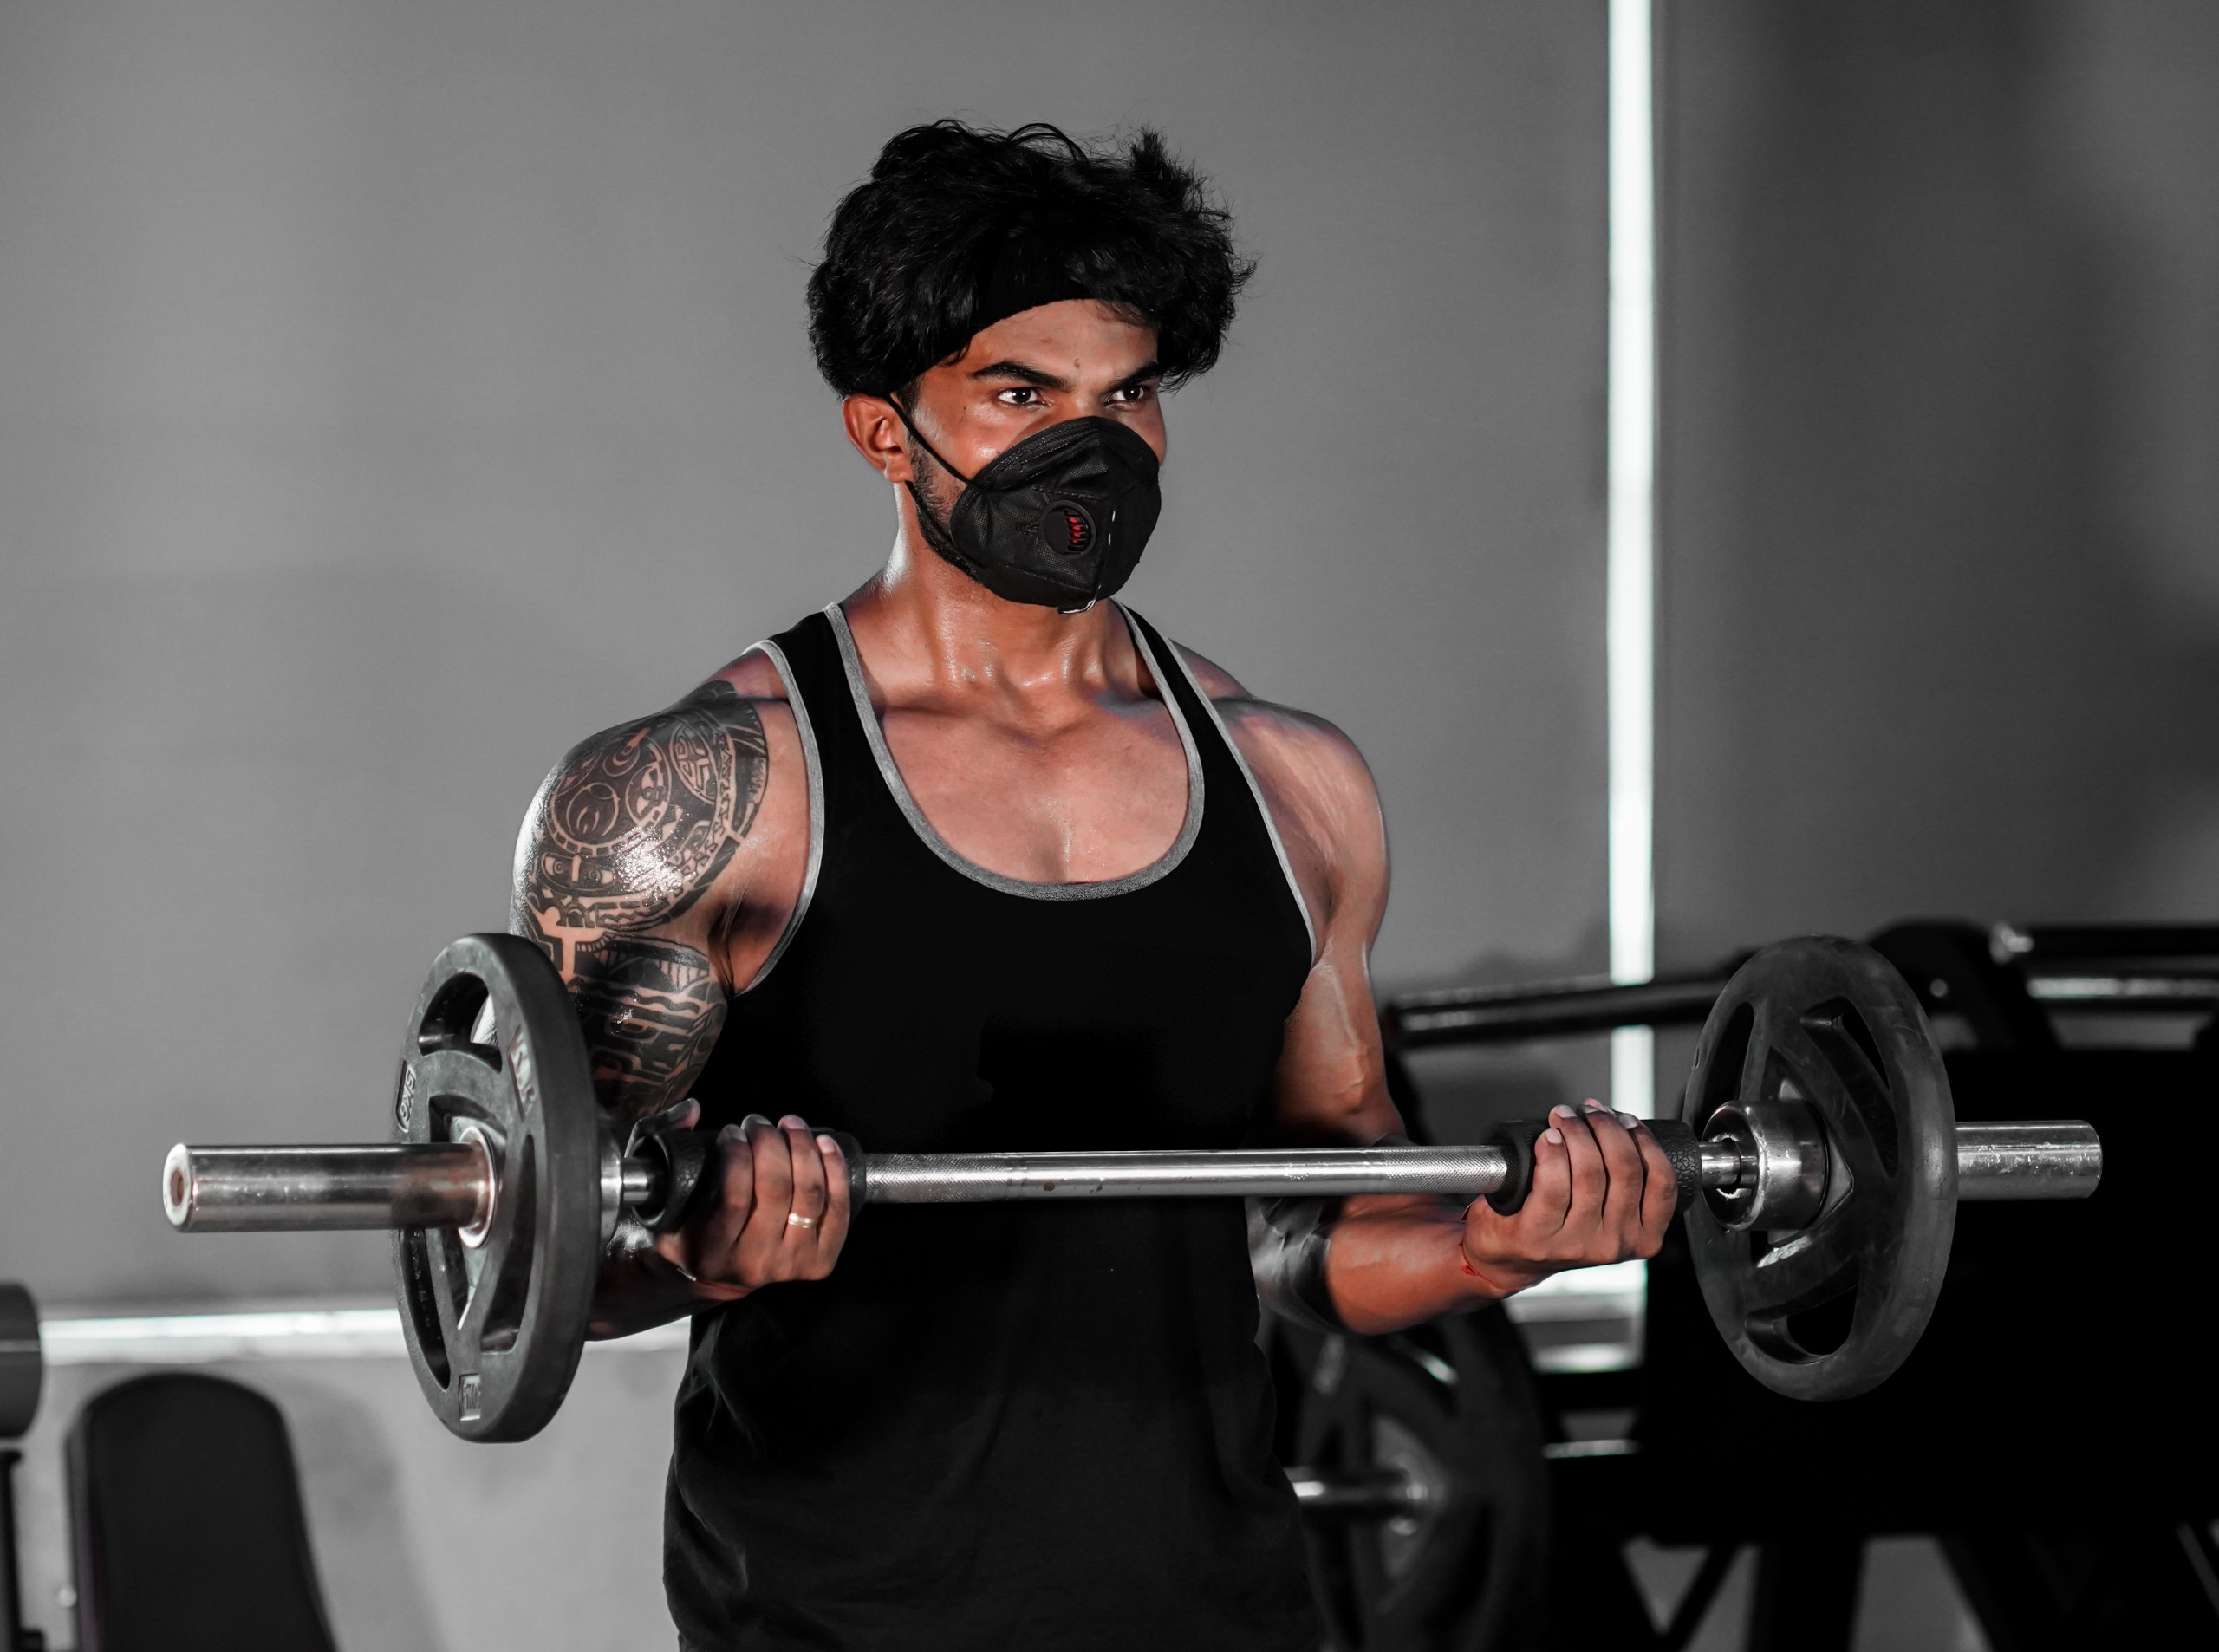 Fit Man Barbell Lifting in the Gym